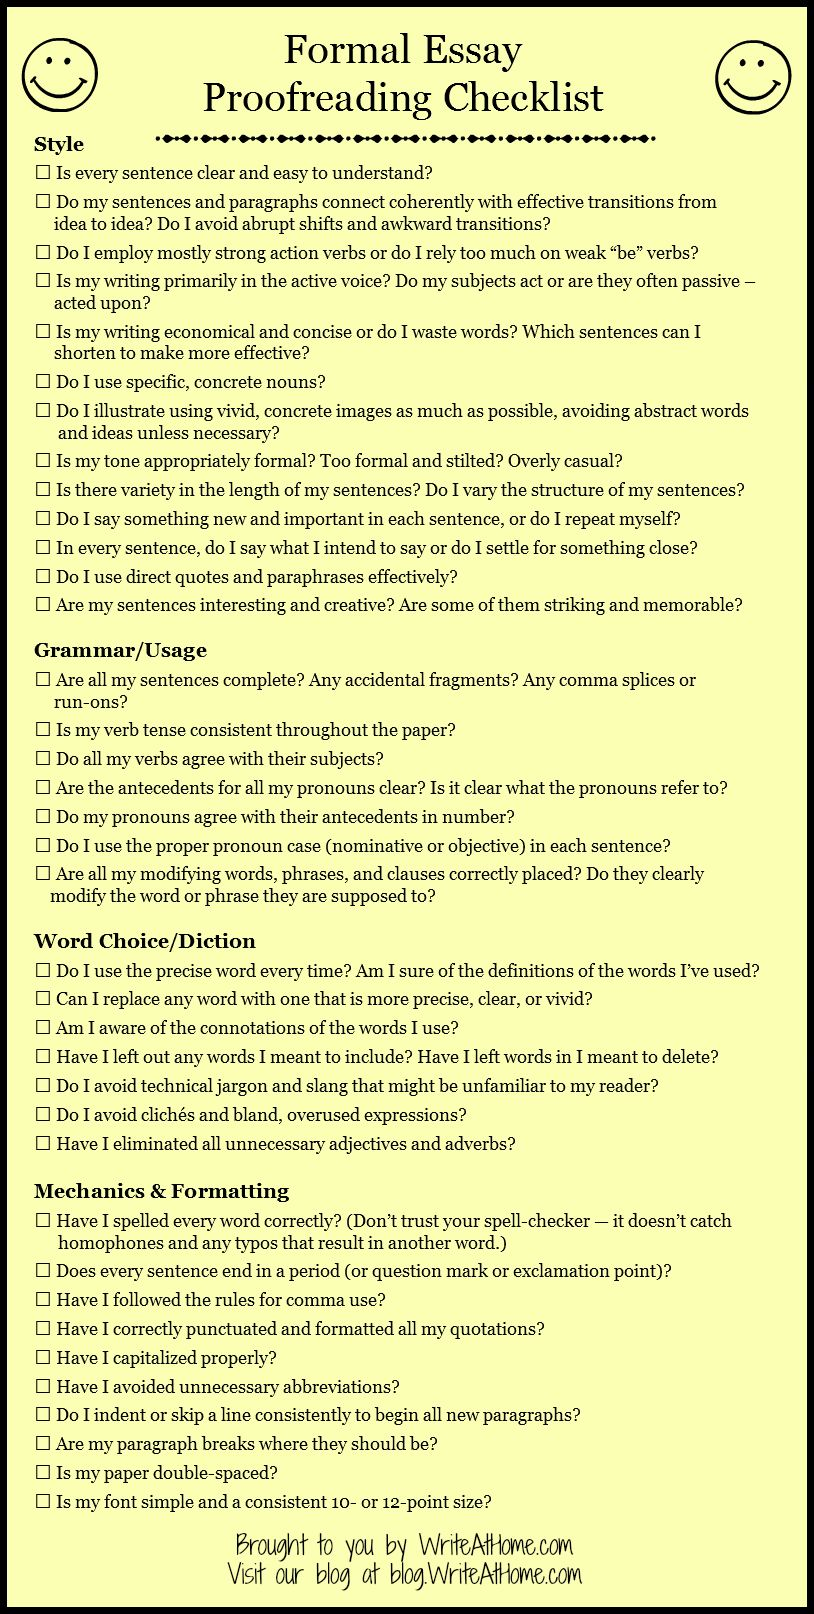 17 best images about essay writing tips